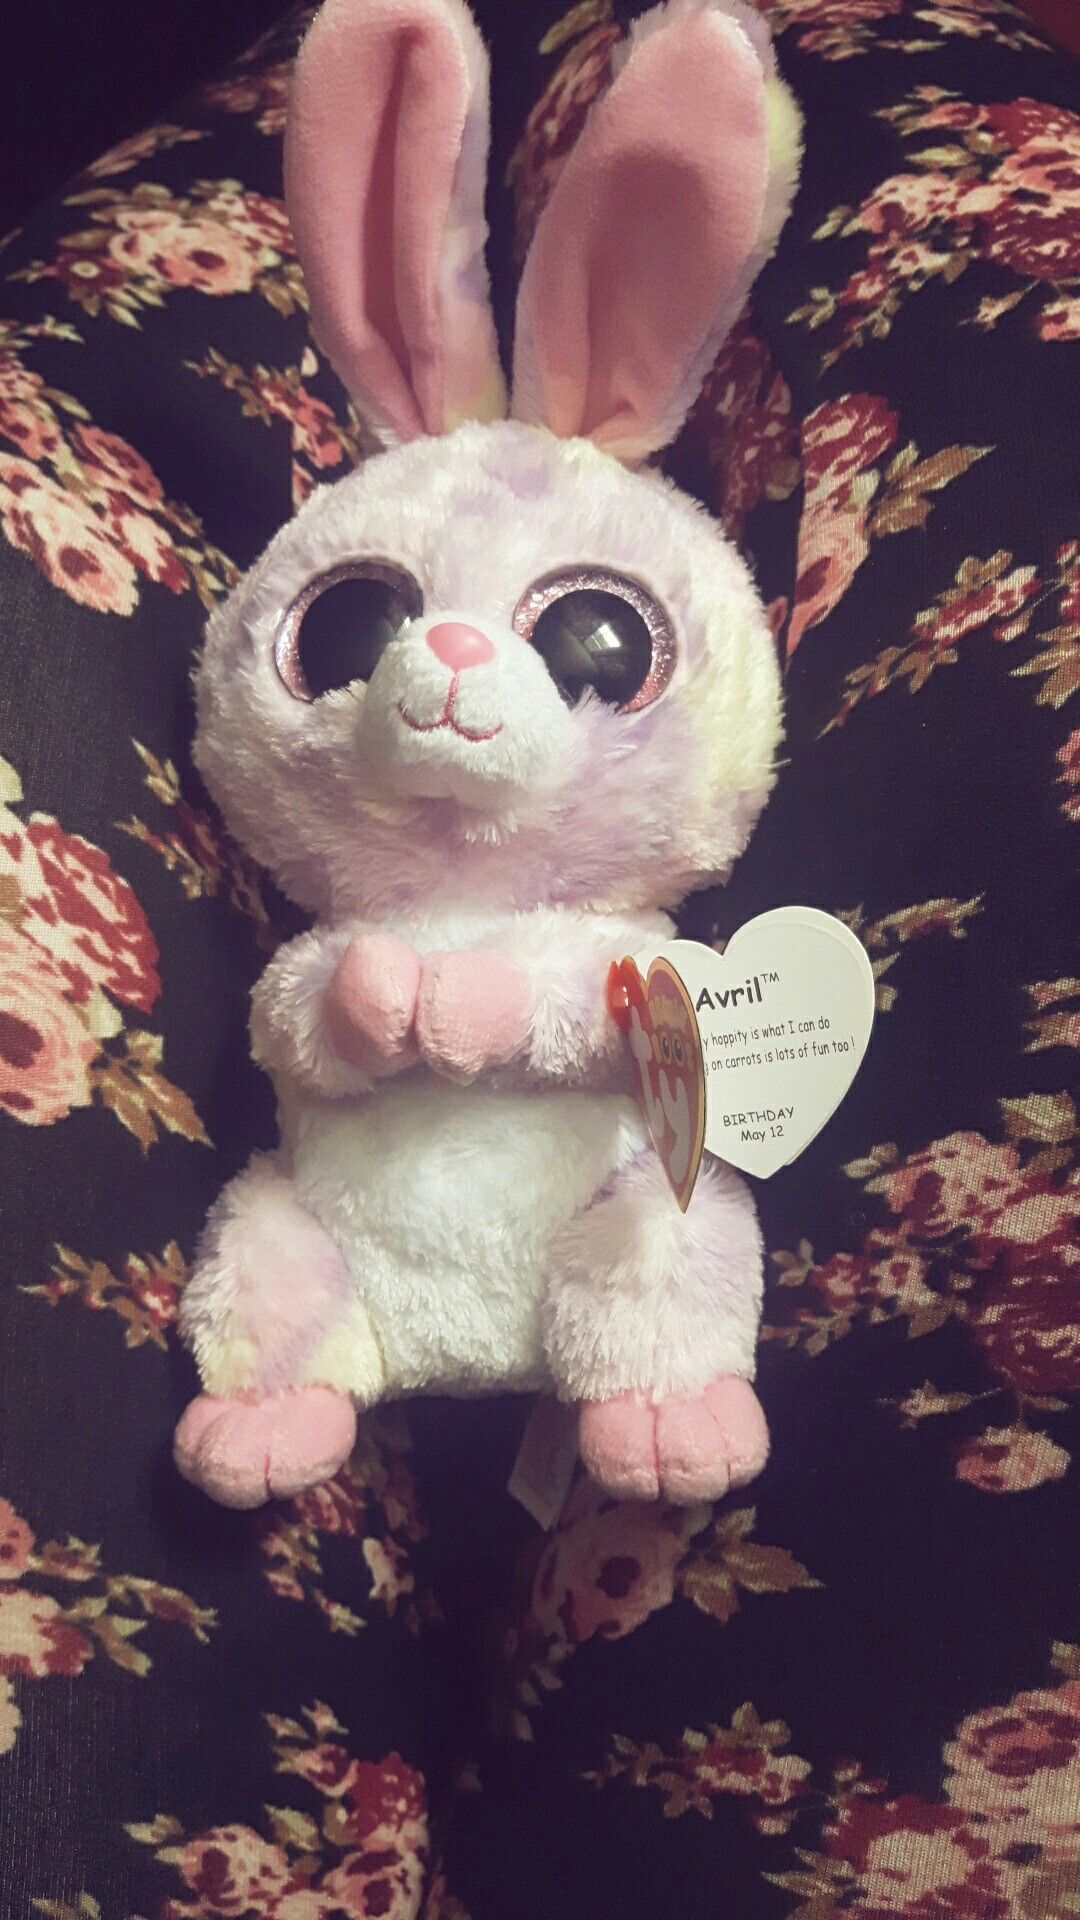 5cc9a54c0d7 New beanie boos April Going hippity hoppity is what I can do and nibbling  on carrots is lots of fun too! Birthday may 12❤